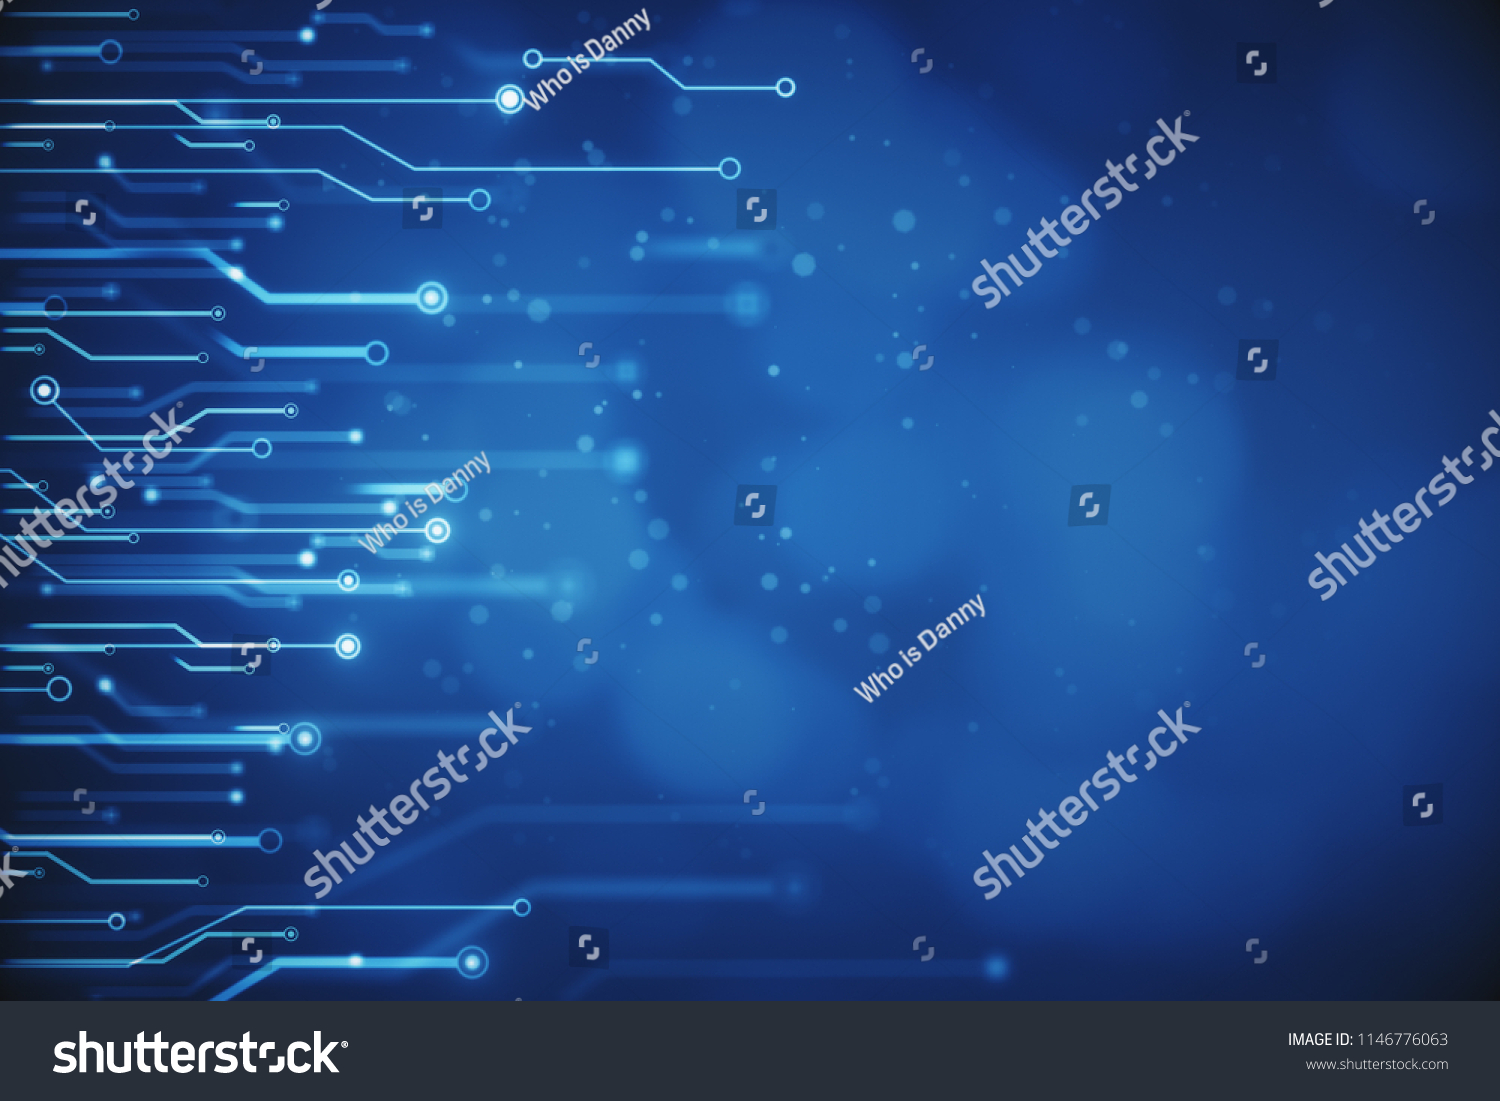 Creative Blurry Blue Circuit Wallpaper Technology Stock Illustration Series 3d Animated Model Parallel And Computing Concept Rendering